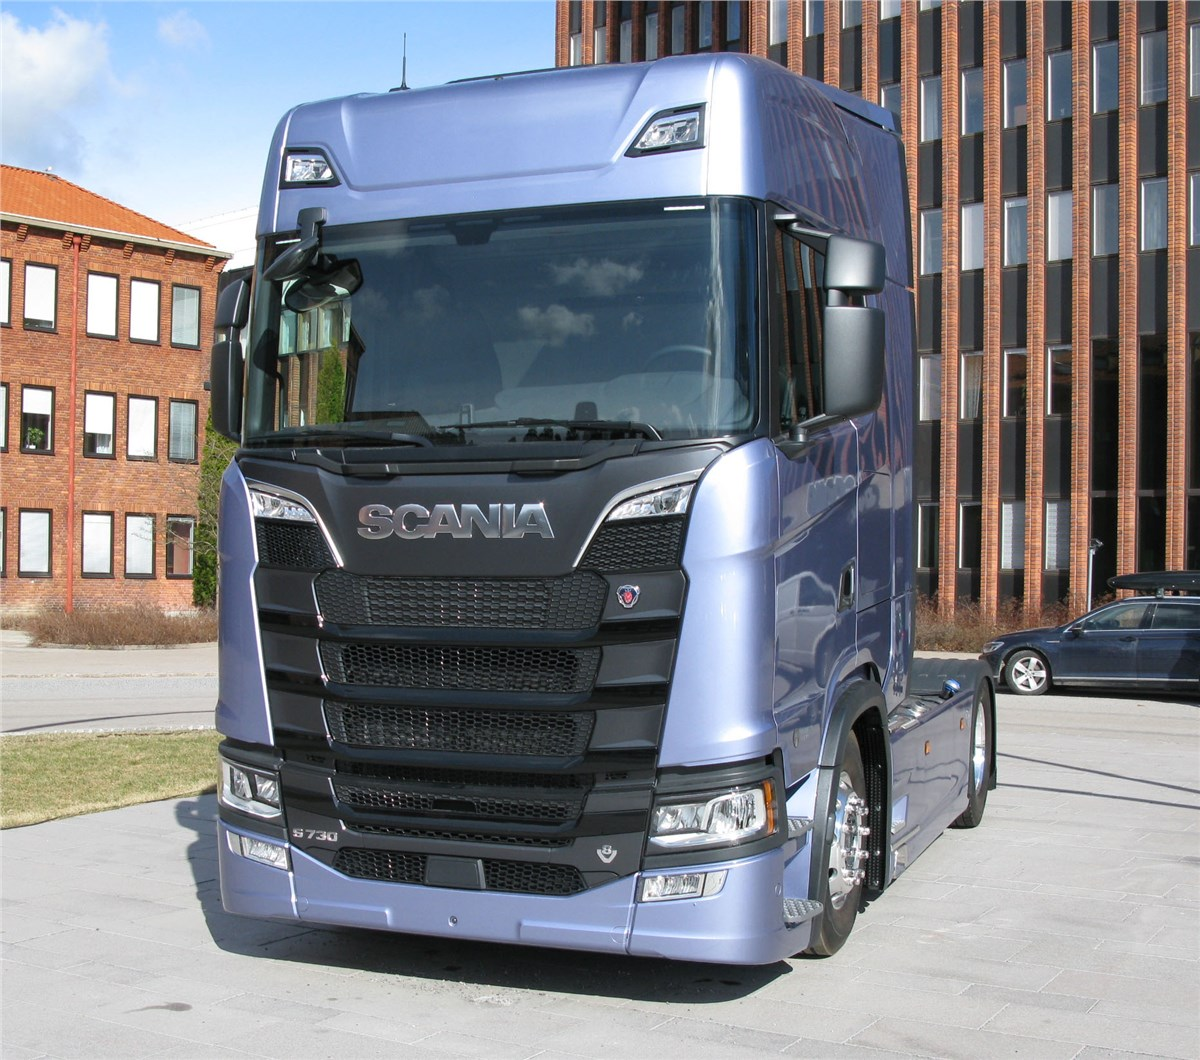 Scania Wins European Transport Award For Sustainability 2018